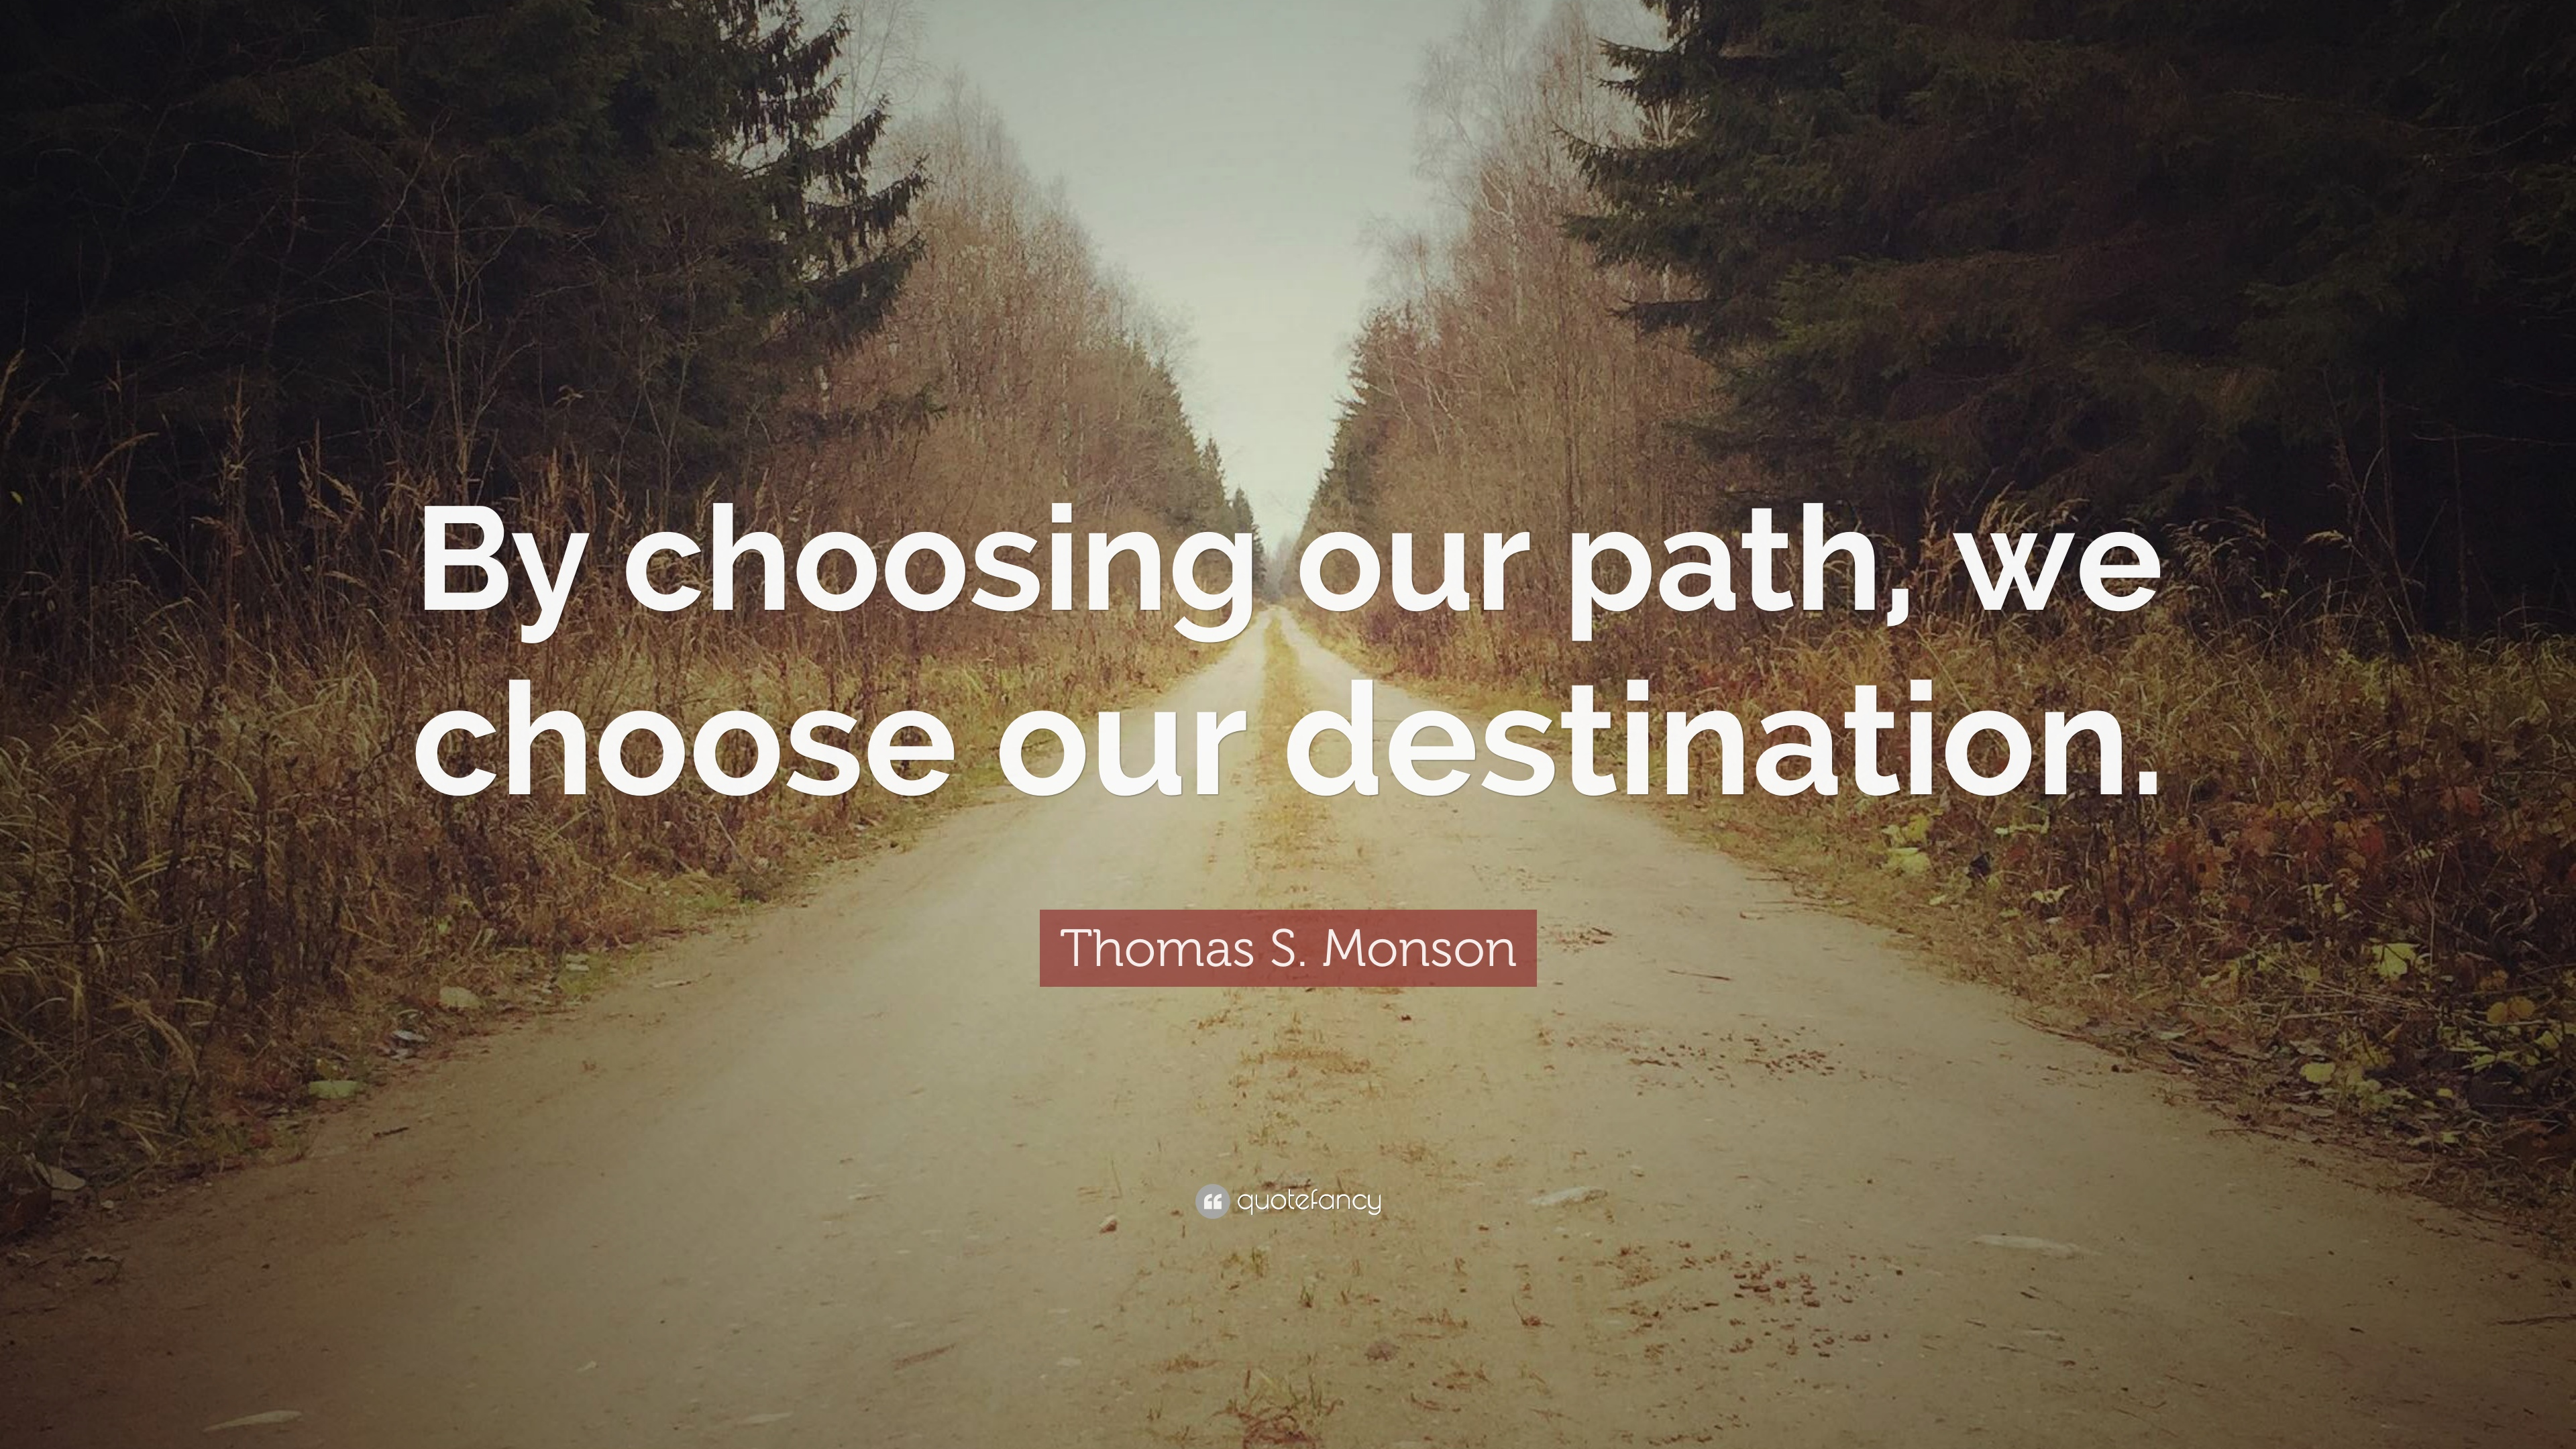 Thomas S Monson Quote By Choosing Our Path We Choose Our